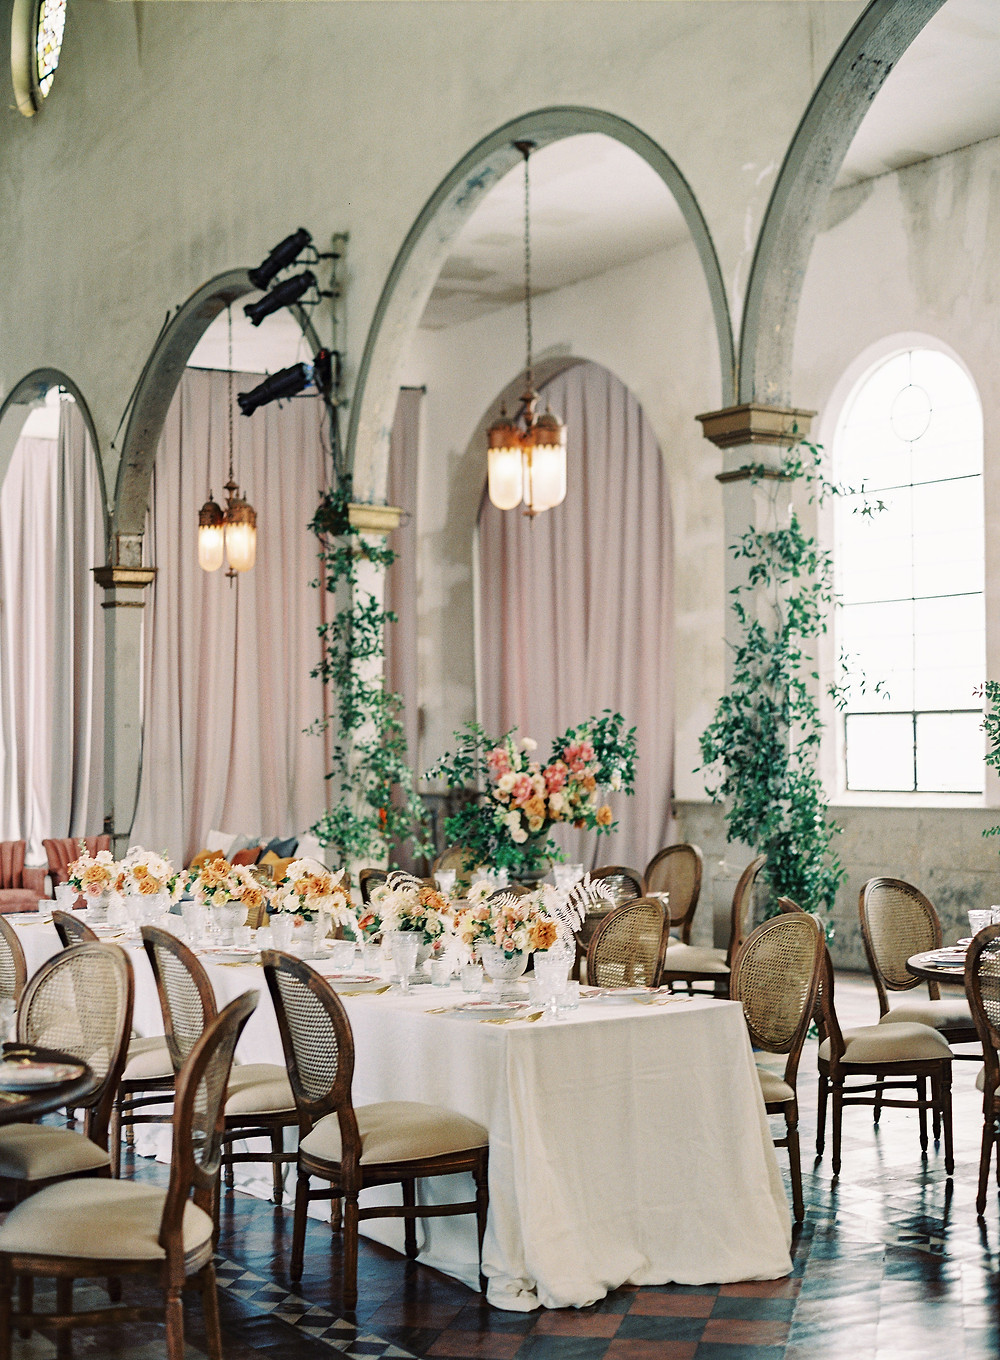 Marigny opera house, seated dinner, wedding, leaf + petal, Bridgerton Wedding